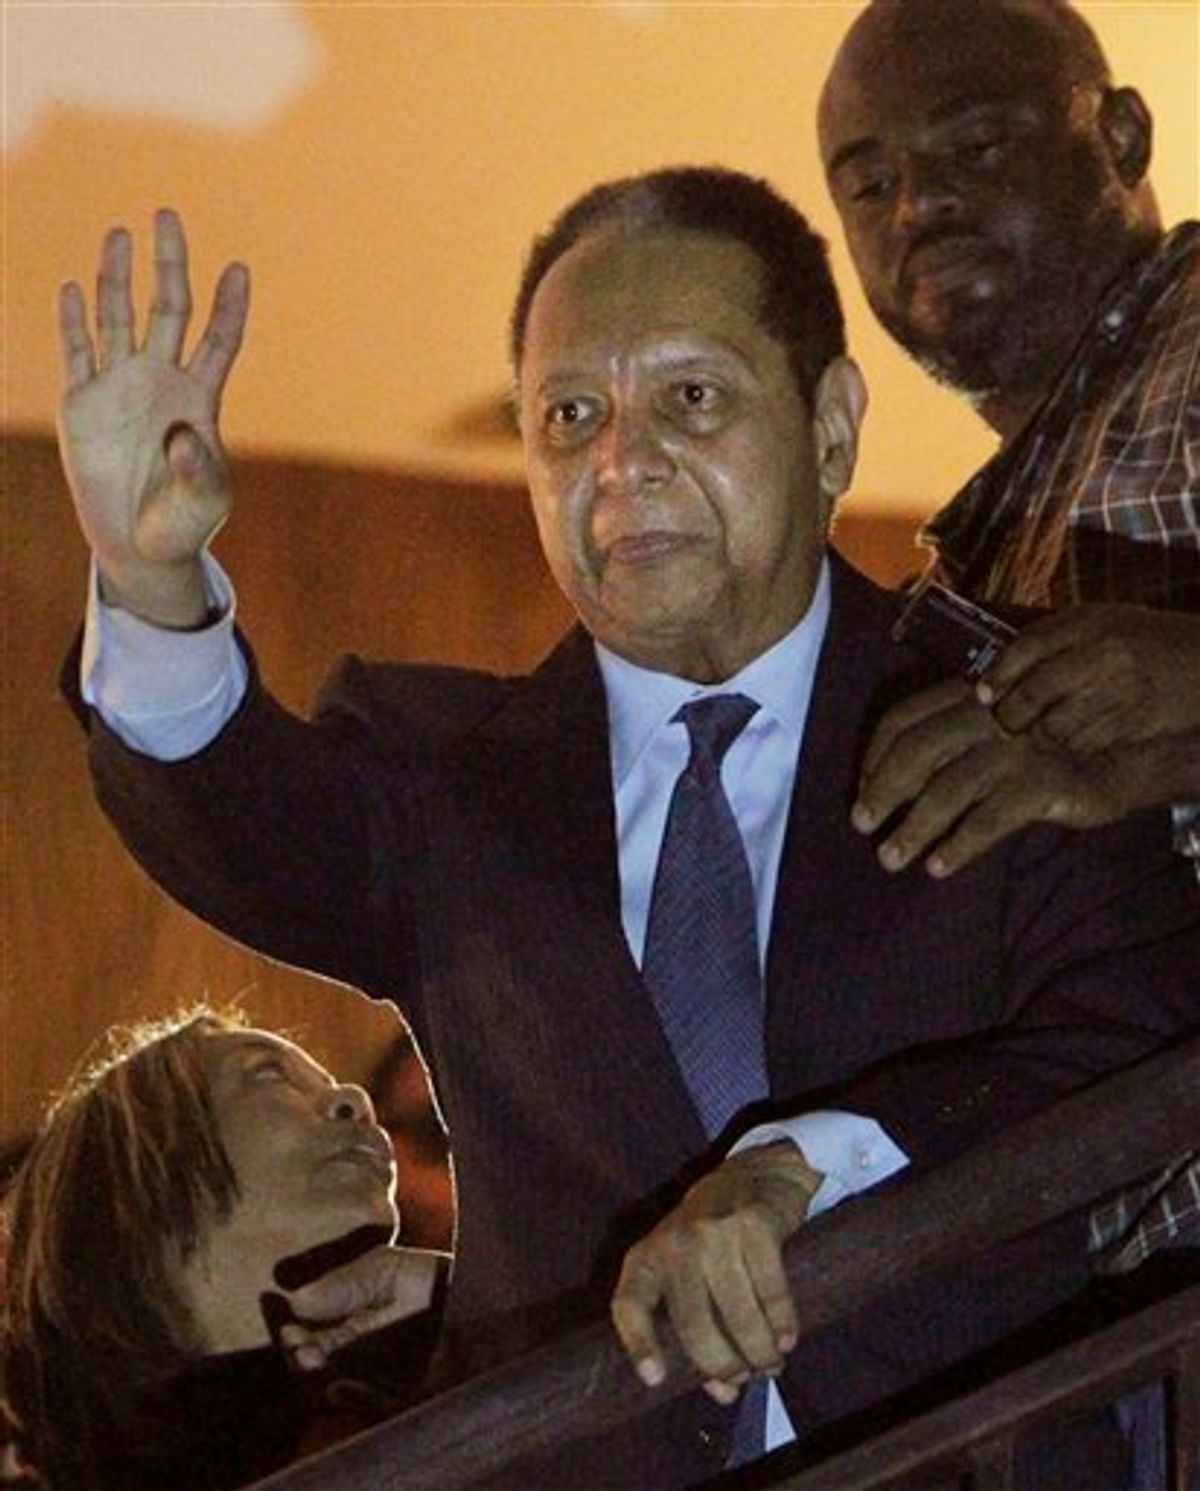 """ALTERNATIVE CROP OF PAP109 - Haiti's former dictator Jean-Claude """"Baby Doc"""" Duvalier, center, waves to supporters from a hotel balcony after his arrival in Port-au-Prince, Haiti, Sunday Jan. 16, 2011. Duvalier returned Sunday to Haiti after nearly 25 years in exile, a surprising and perplexing move that comes as his country struggles with a political crisis and the stalled effort to recover from last year's devastating earthquake. (AP Photo/Dieu Nalio Chery) (AP)"""